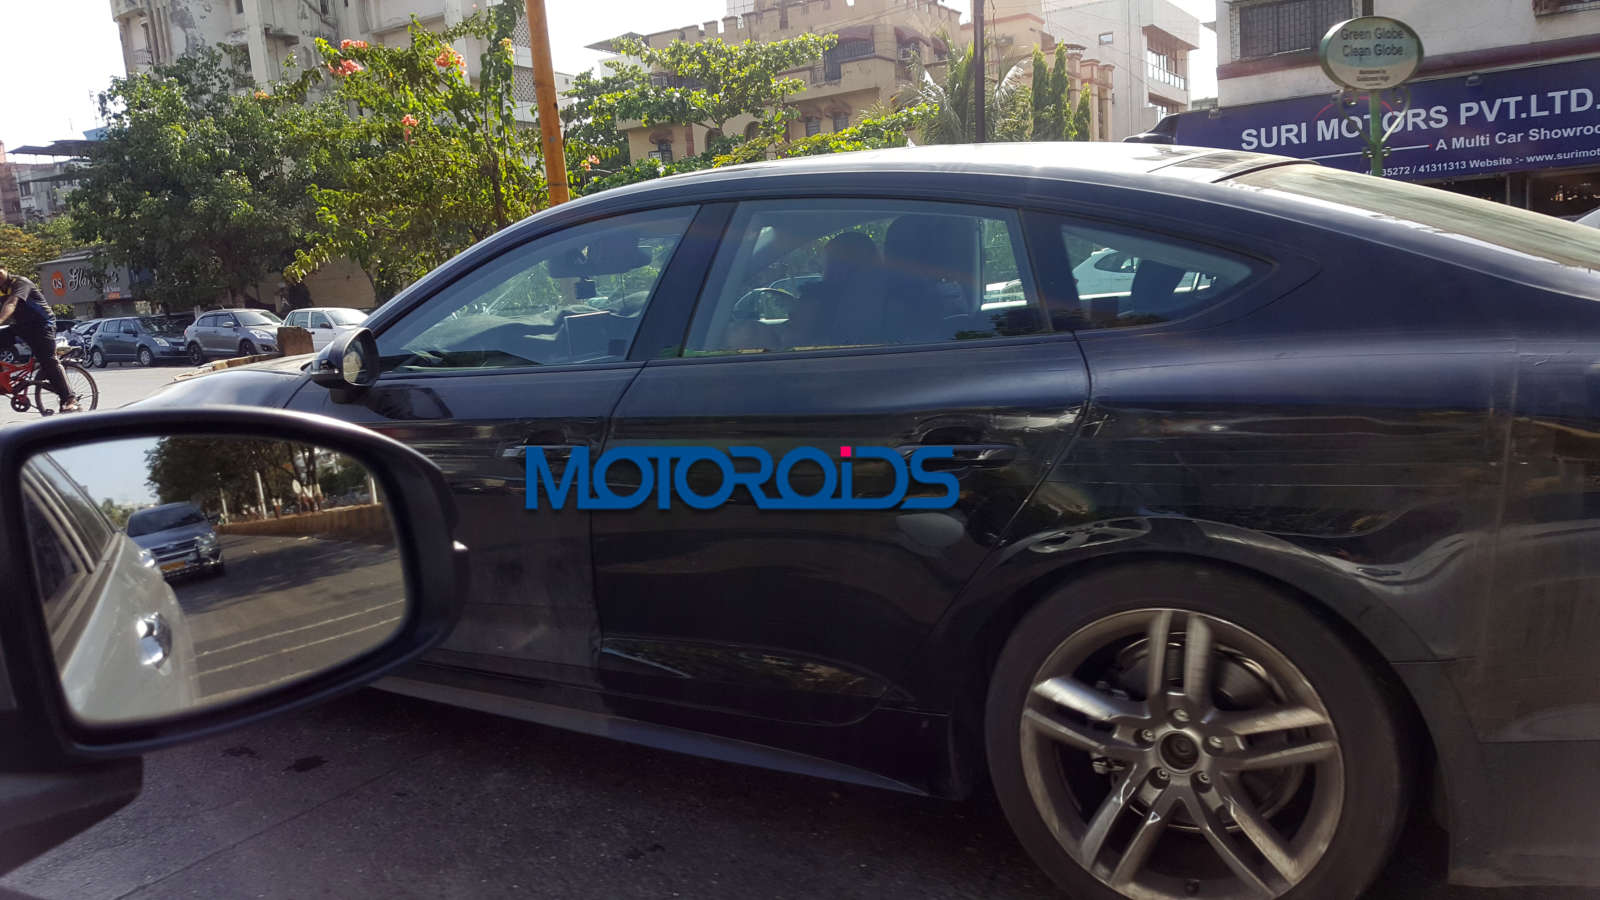 2016 Audi A5 Sportback continues testing in India before